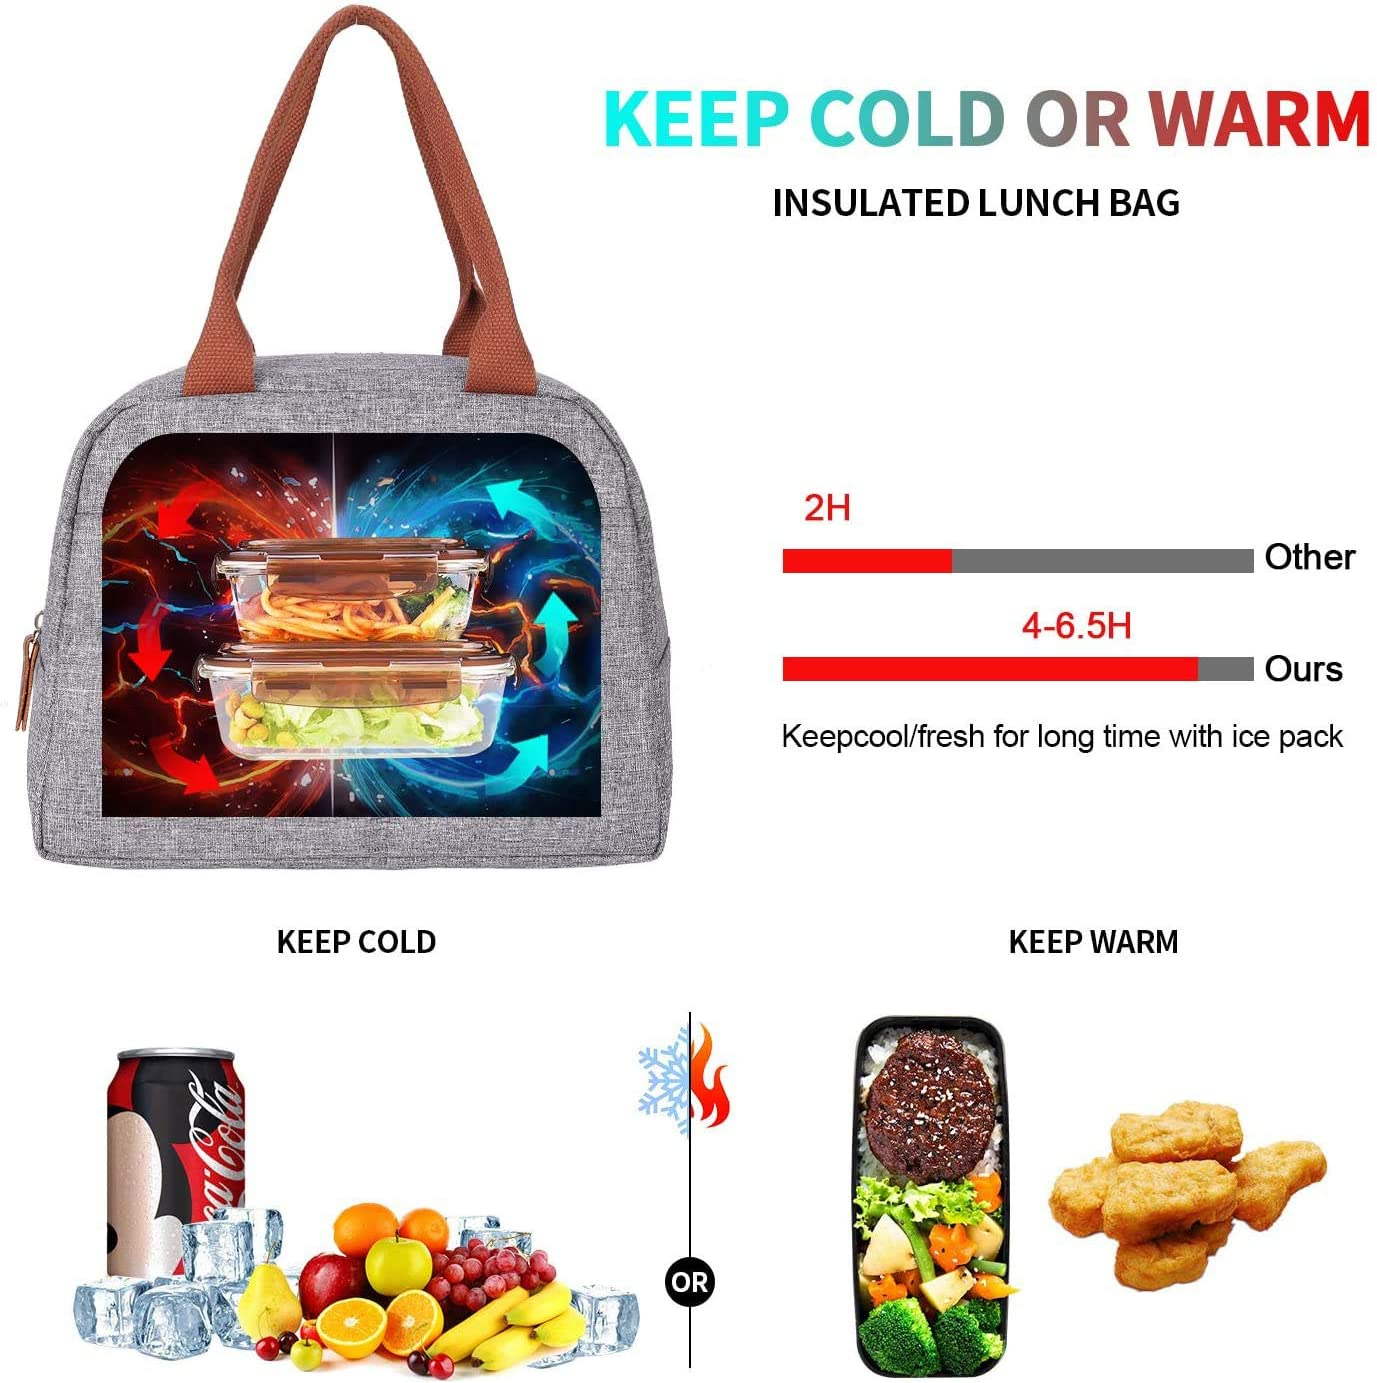 CXWMZY Lunch Bag Cooler Bag for Women Tote Bag Insulated Lunch Box Water-resistant Thermal Lunch Bag Leak Proof Liner Lunch Bags for Men women Picnic Boating Beach Fishing Work